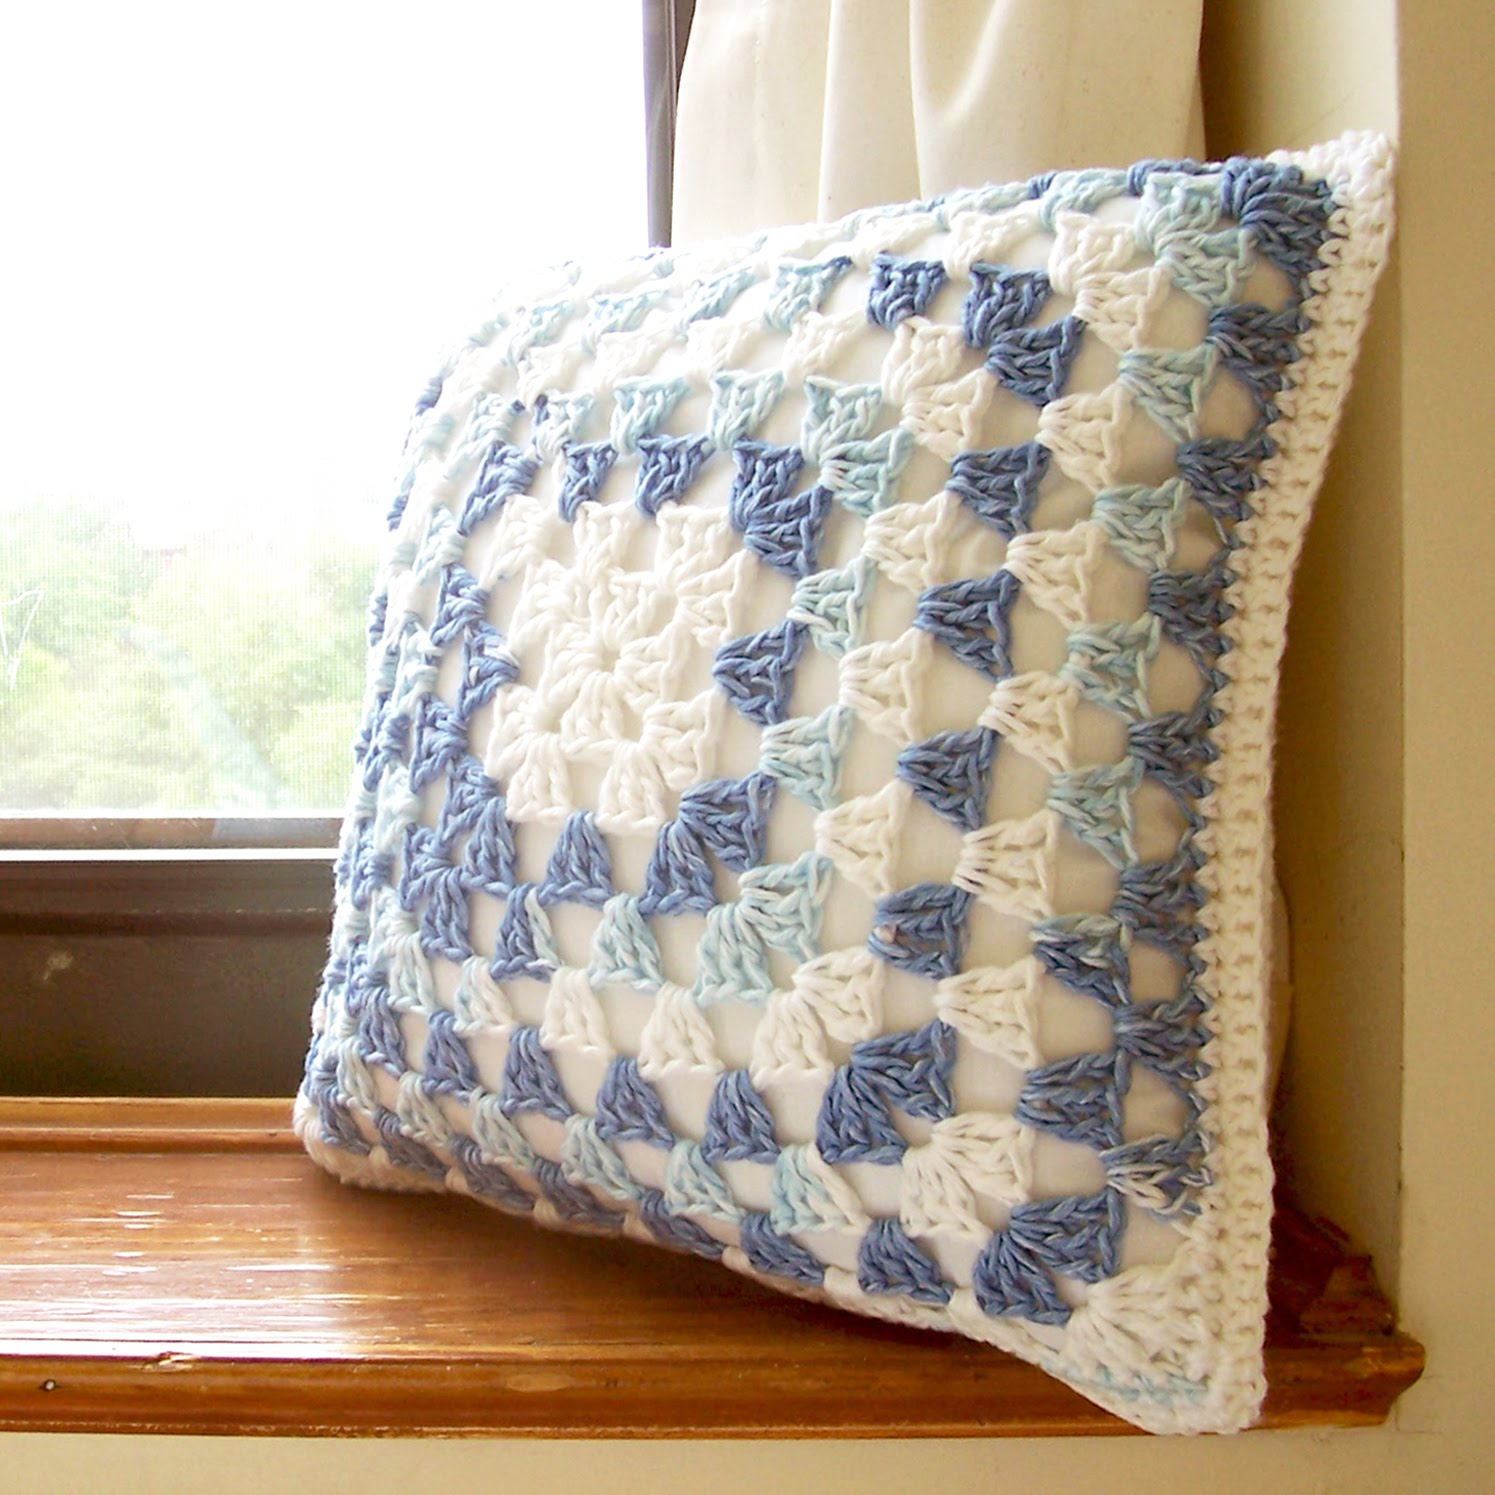 Mill girl granny square pillow cover